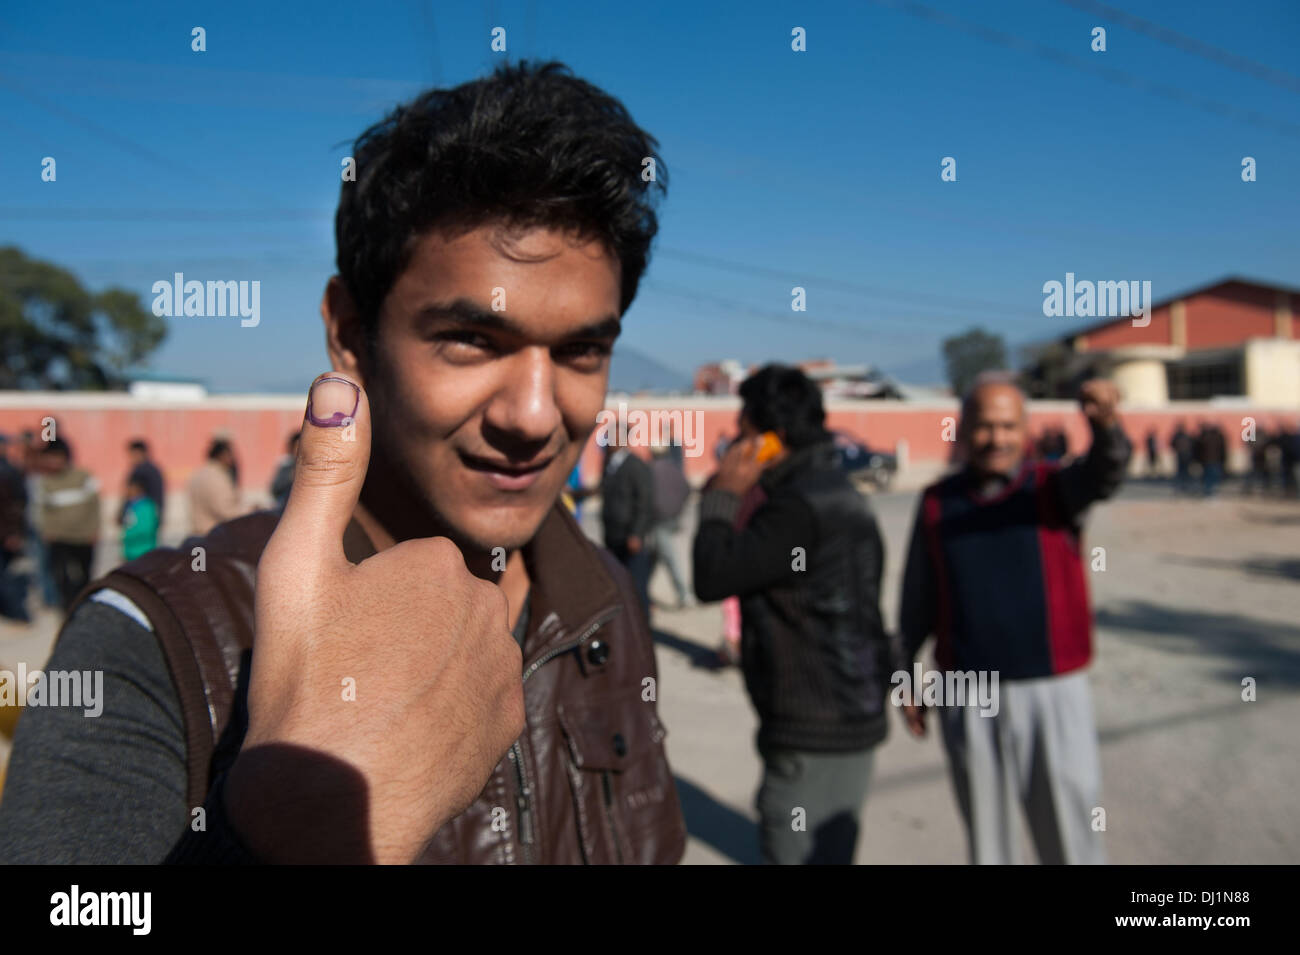 Nov. 19, 2013 - Kathmandu, Nepal - BIZIN UPADAYA, an 18 year old, shows marked finger after voting. He voted for the first time. Over 12 million eligible voters flocked to polling stations in a bid to elect the Constituent Assembly. The last elections were held in 2008 when the Constituent Assembly failed to write a new constitution. Nepal has been struggling with political uncertainty since 2006 when street demonstrations forced then King Gyanendra to give up his authoritarian rule. The Constituent Assembly elected in 2008 abolished the centuries-old monarchy and converted the nation to a rep - Stock Image